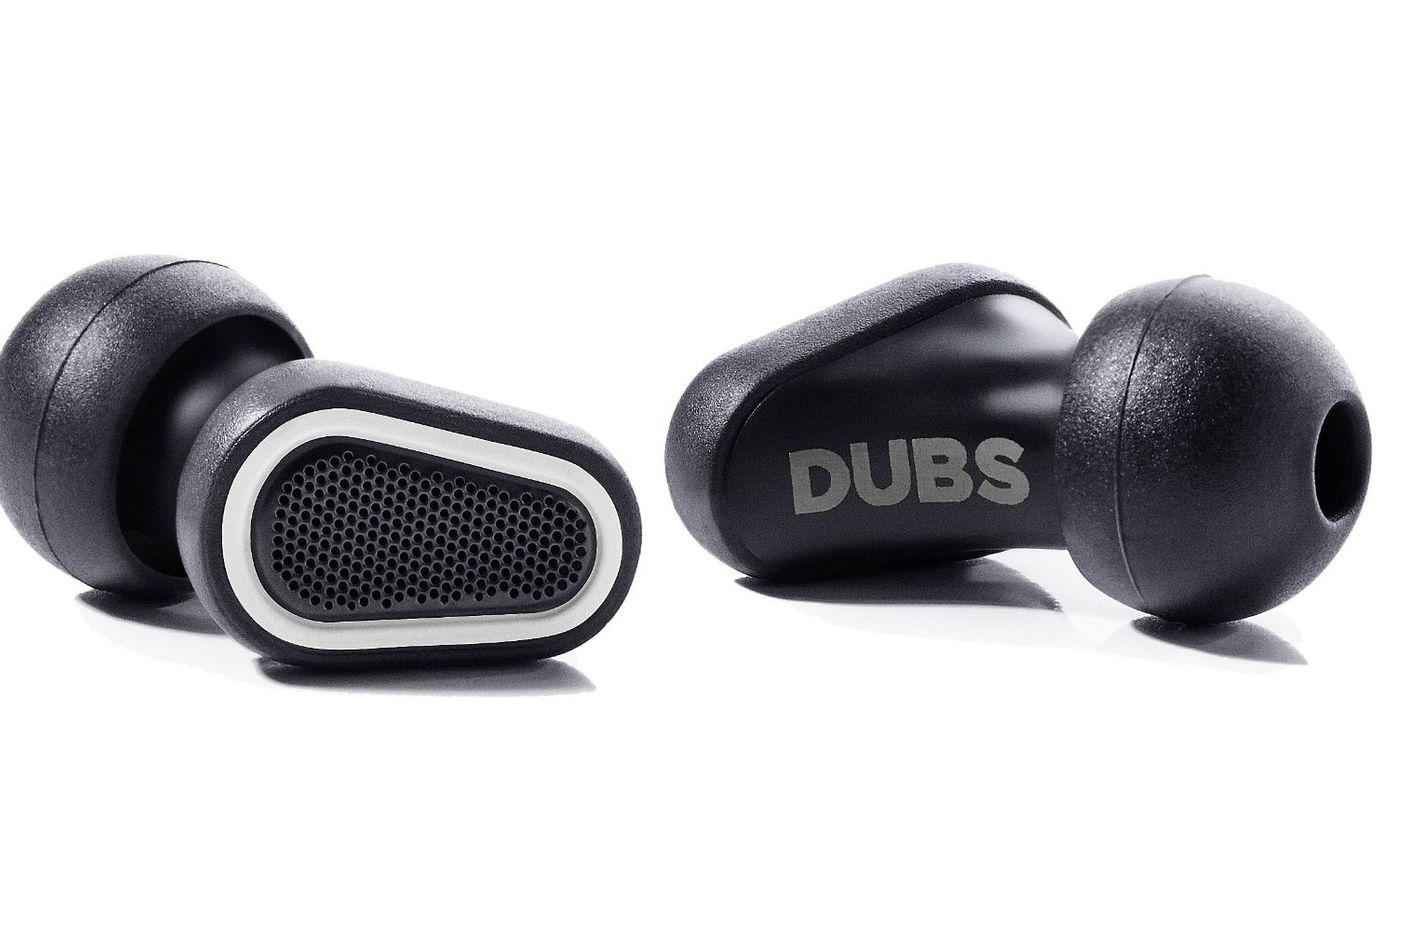 dubs acoustic filter earplugs- strategist best travel accessories and best earplugs for travel